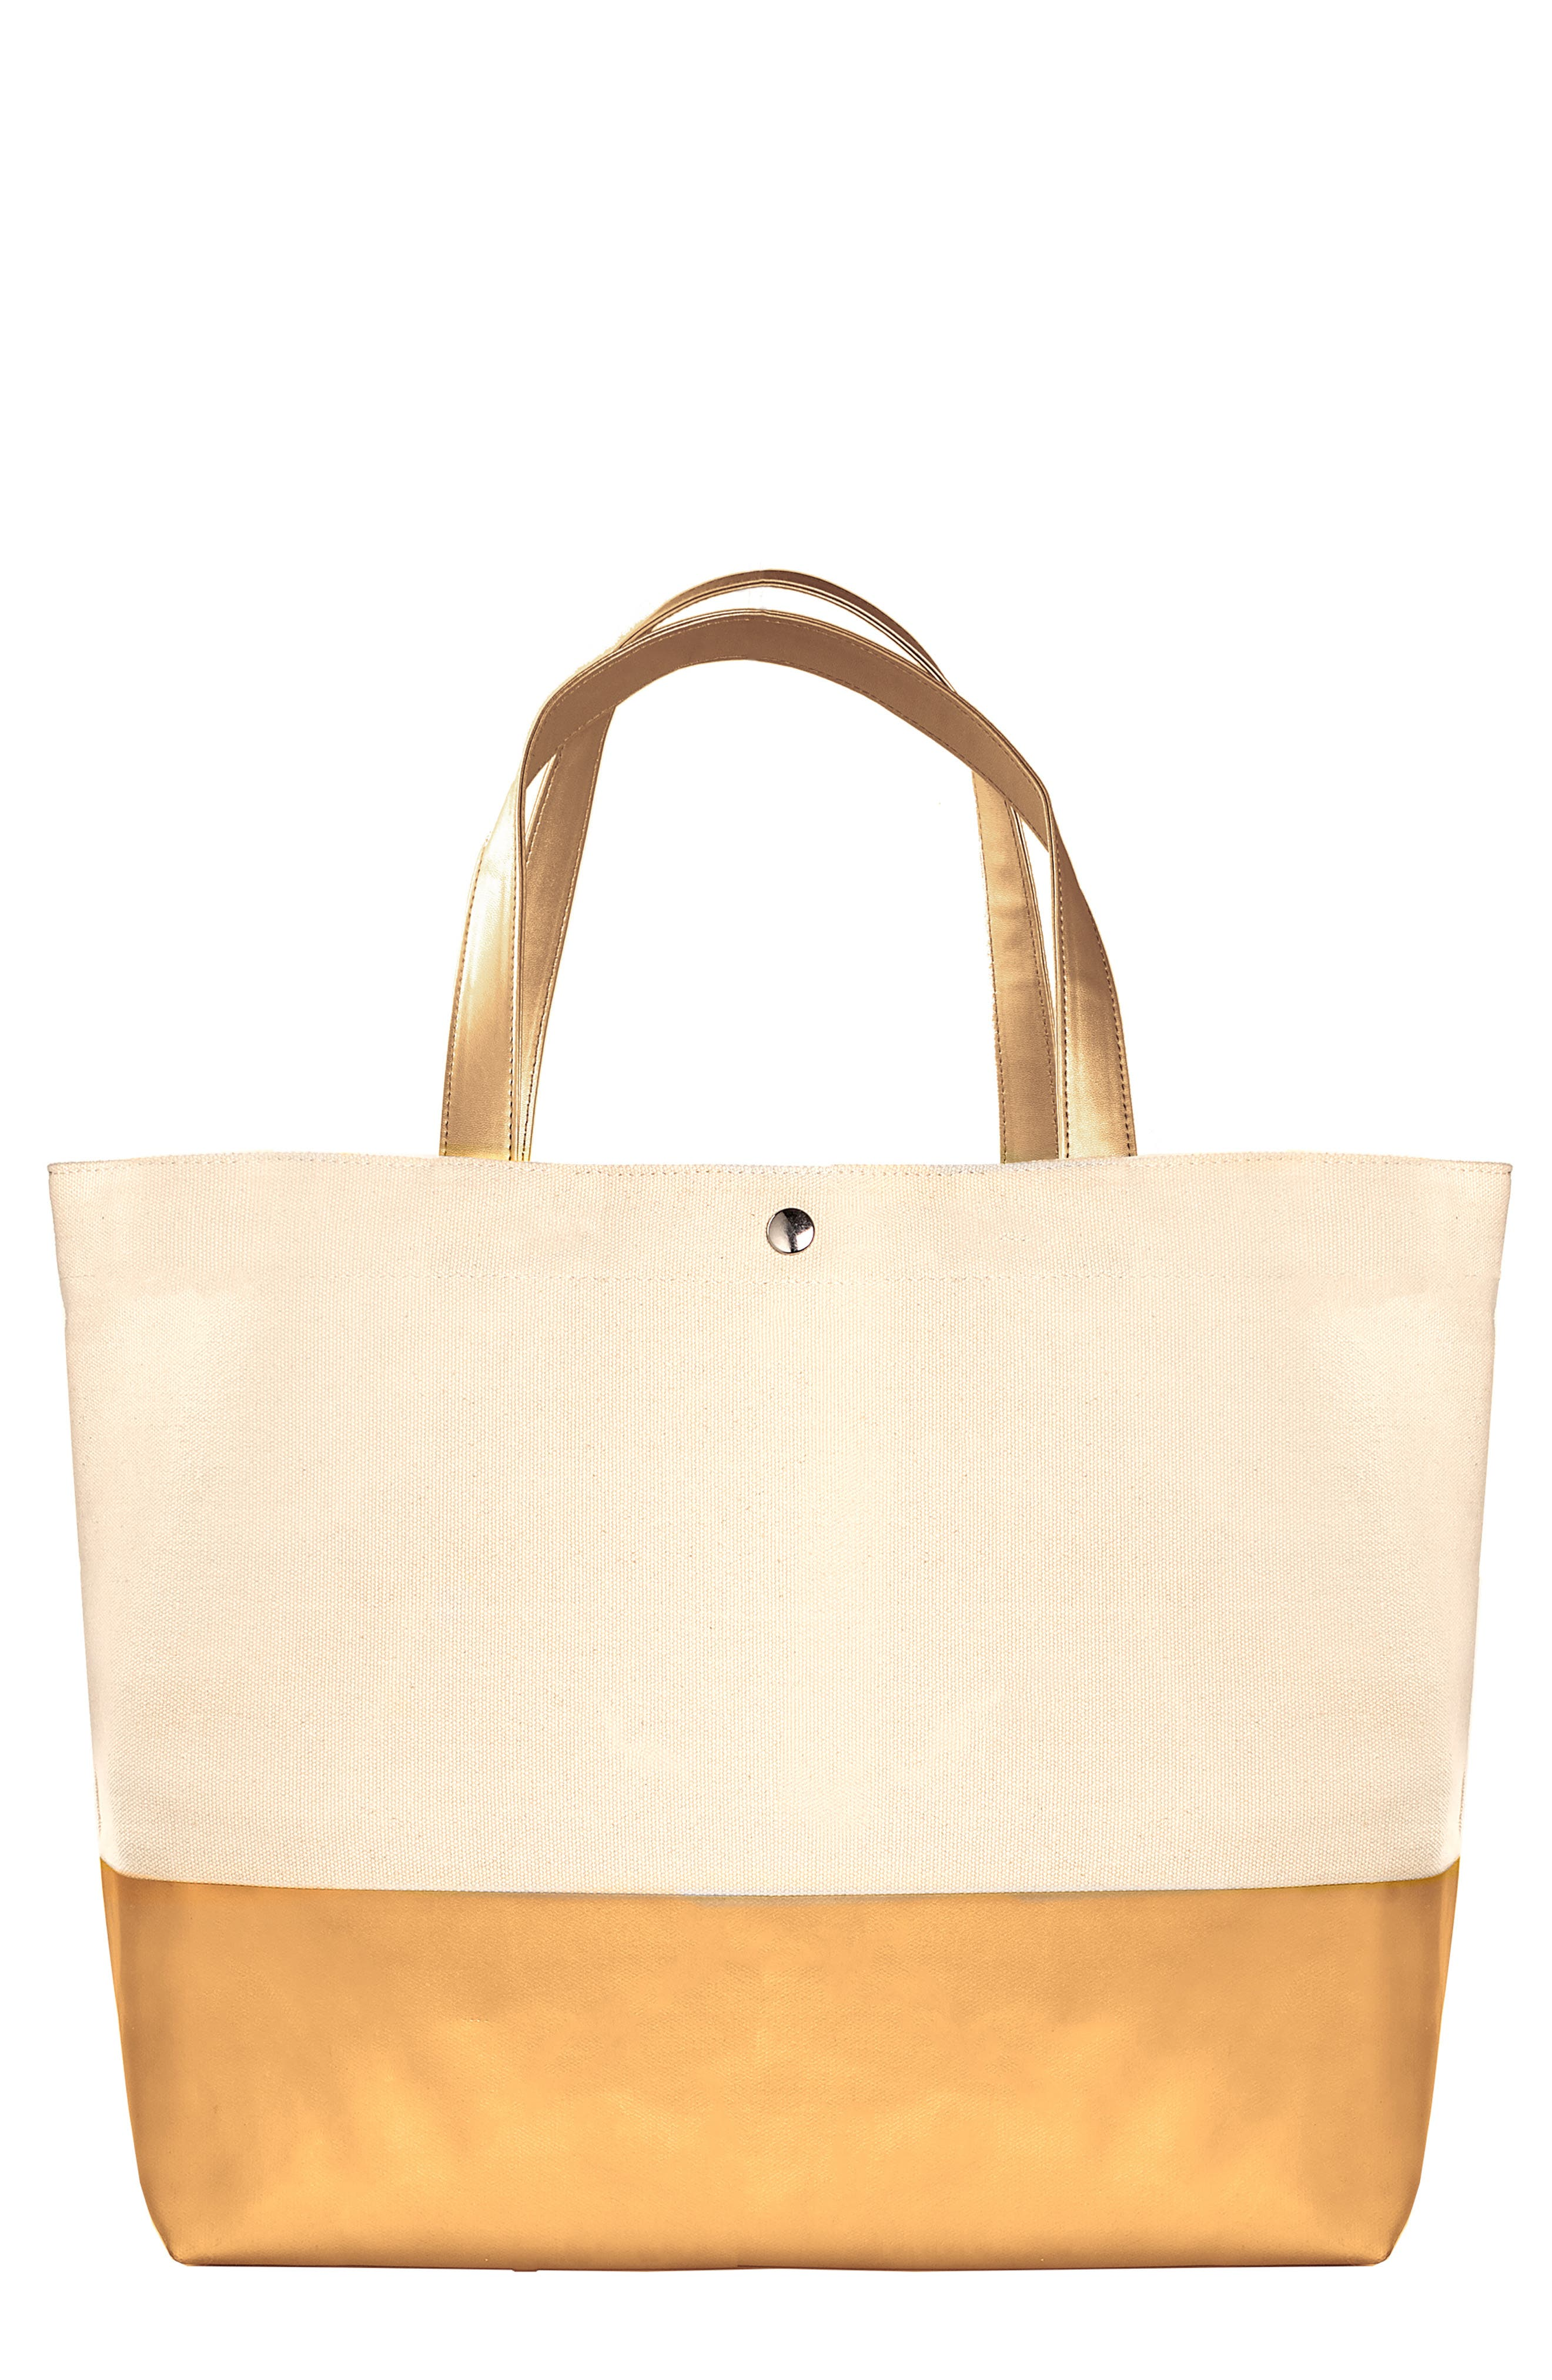 CATHY'S CONCEPTS, Monogram Canvas Tote, Main thumbnail 1, color, GOLD